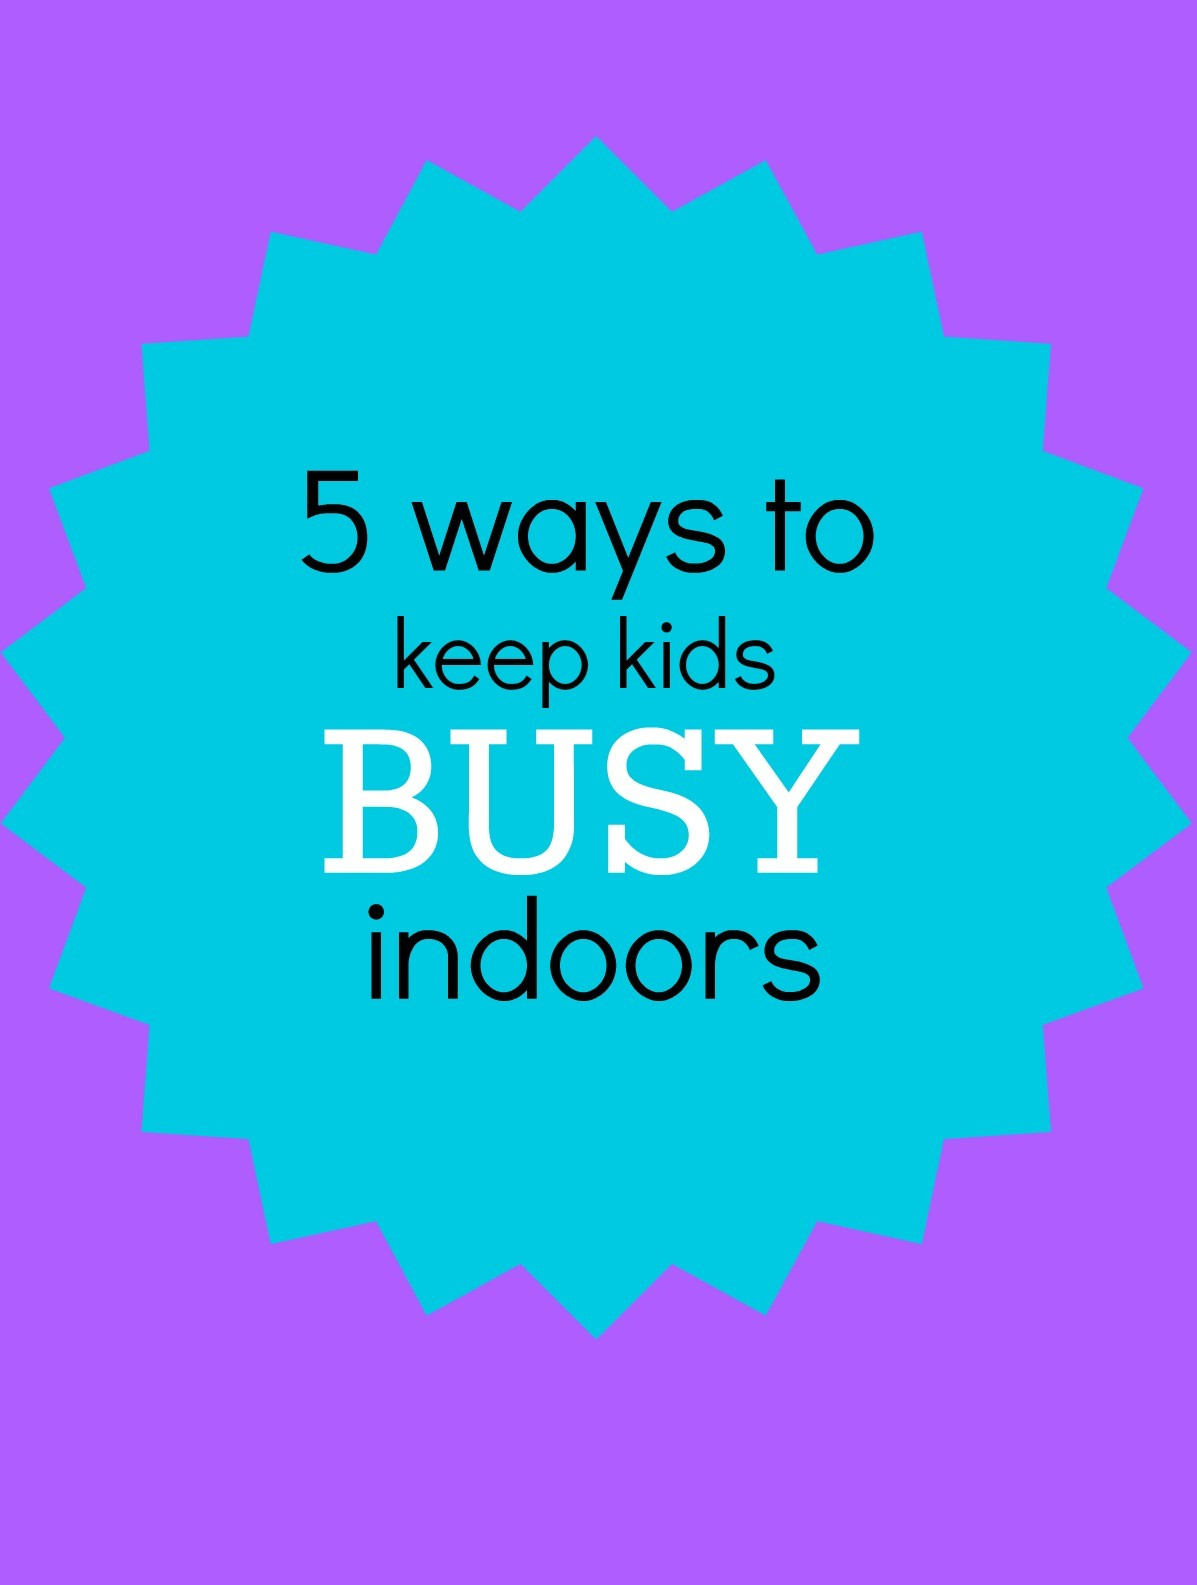 How to keep kids busy indoors during the winter